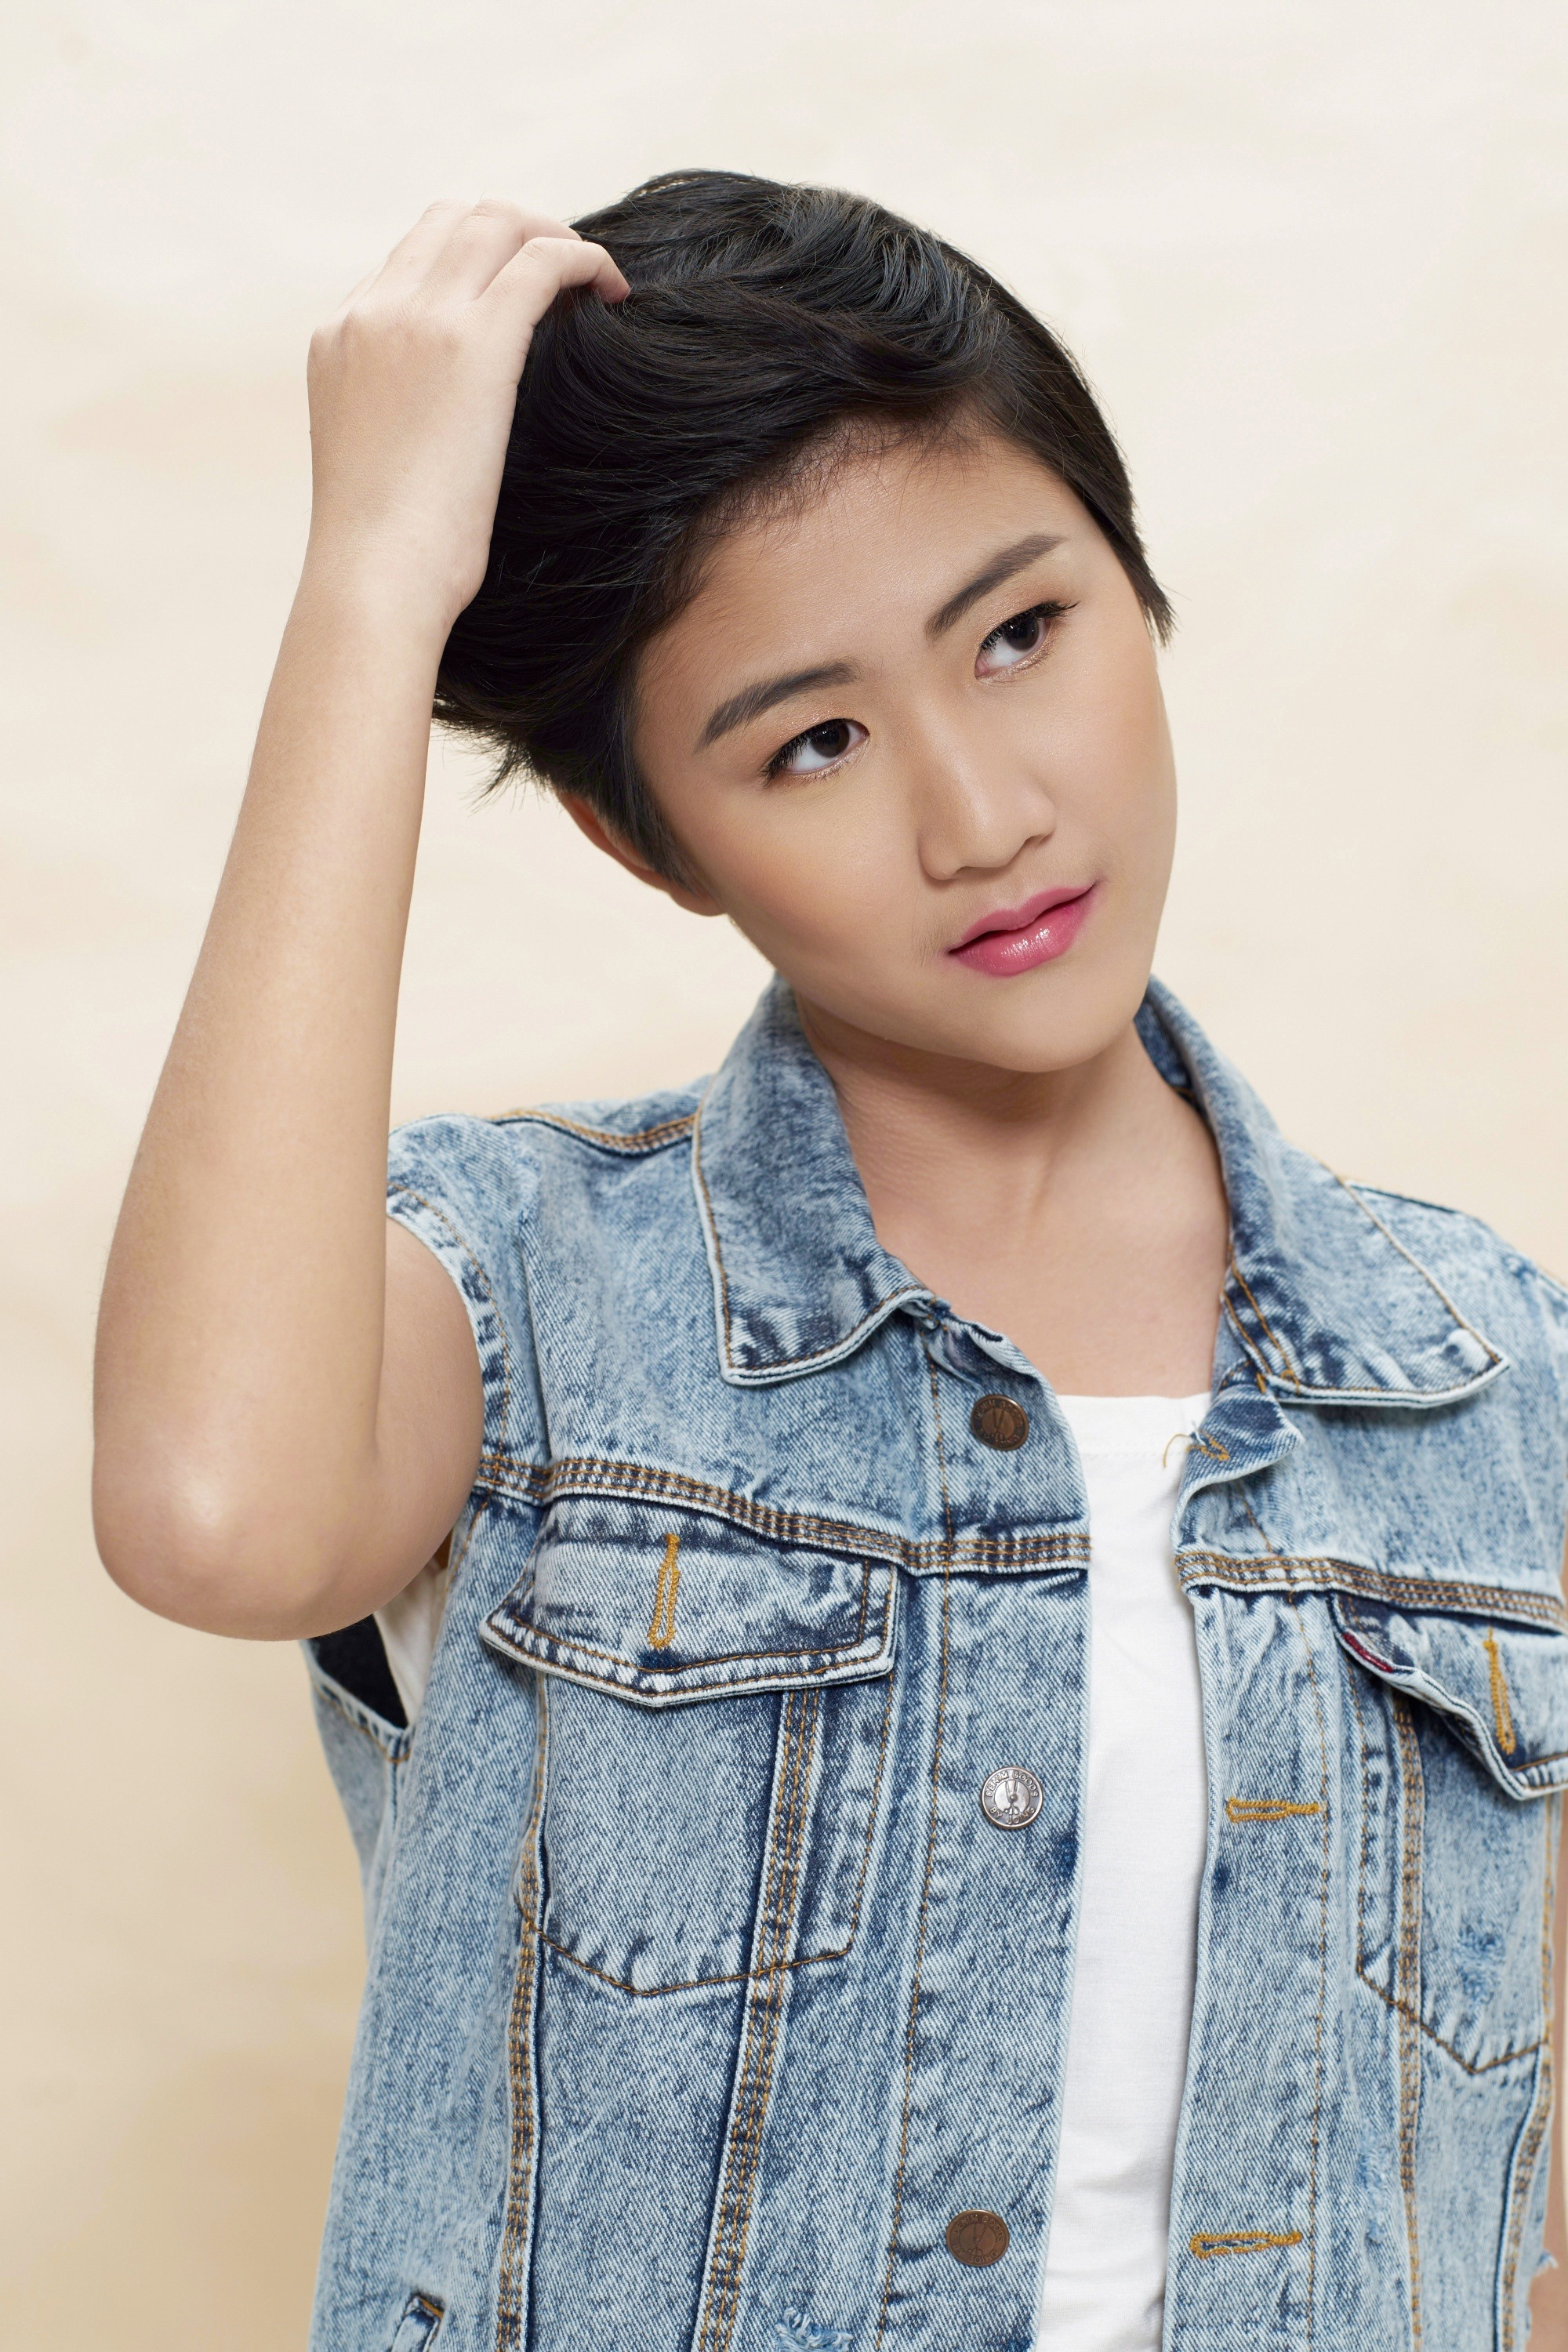 How to use hair wax: Asia woman with short black pixie cut wearing a denim vest touching her hair